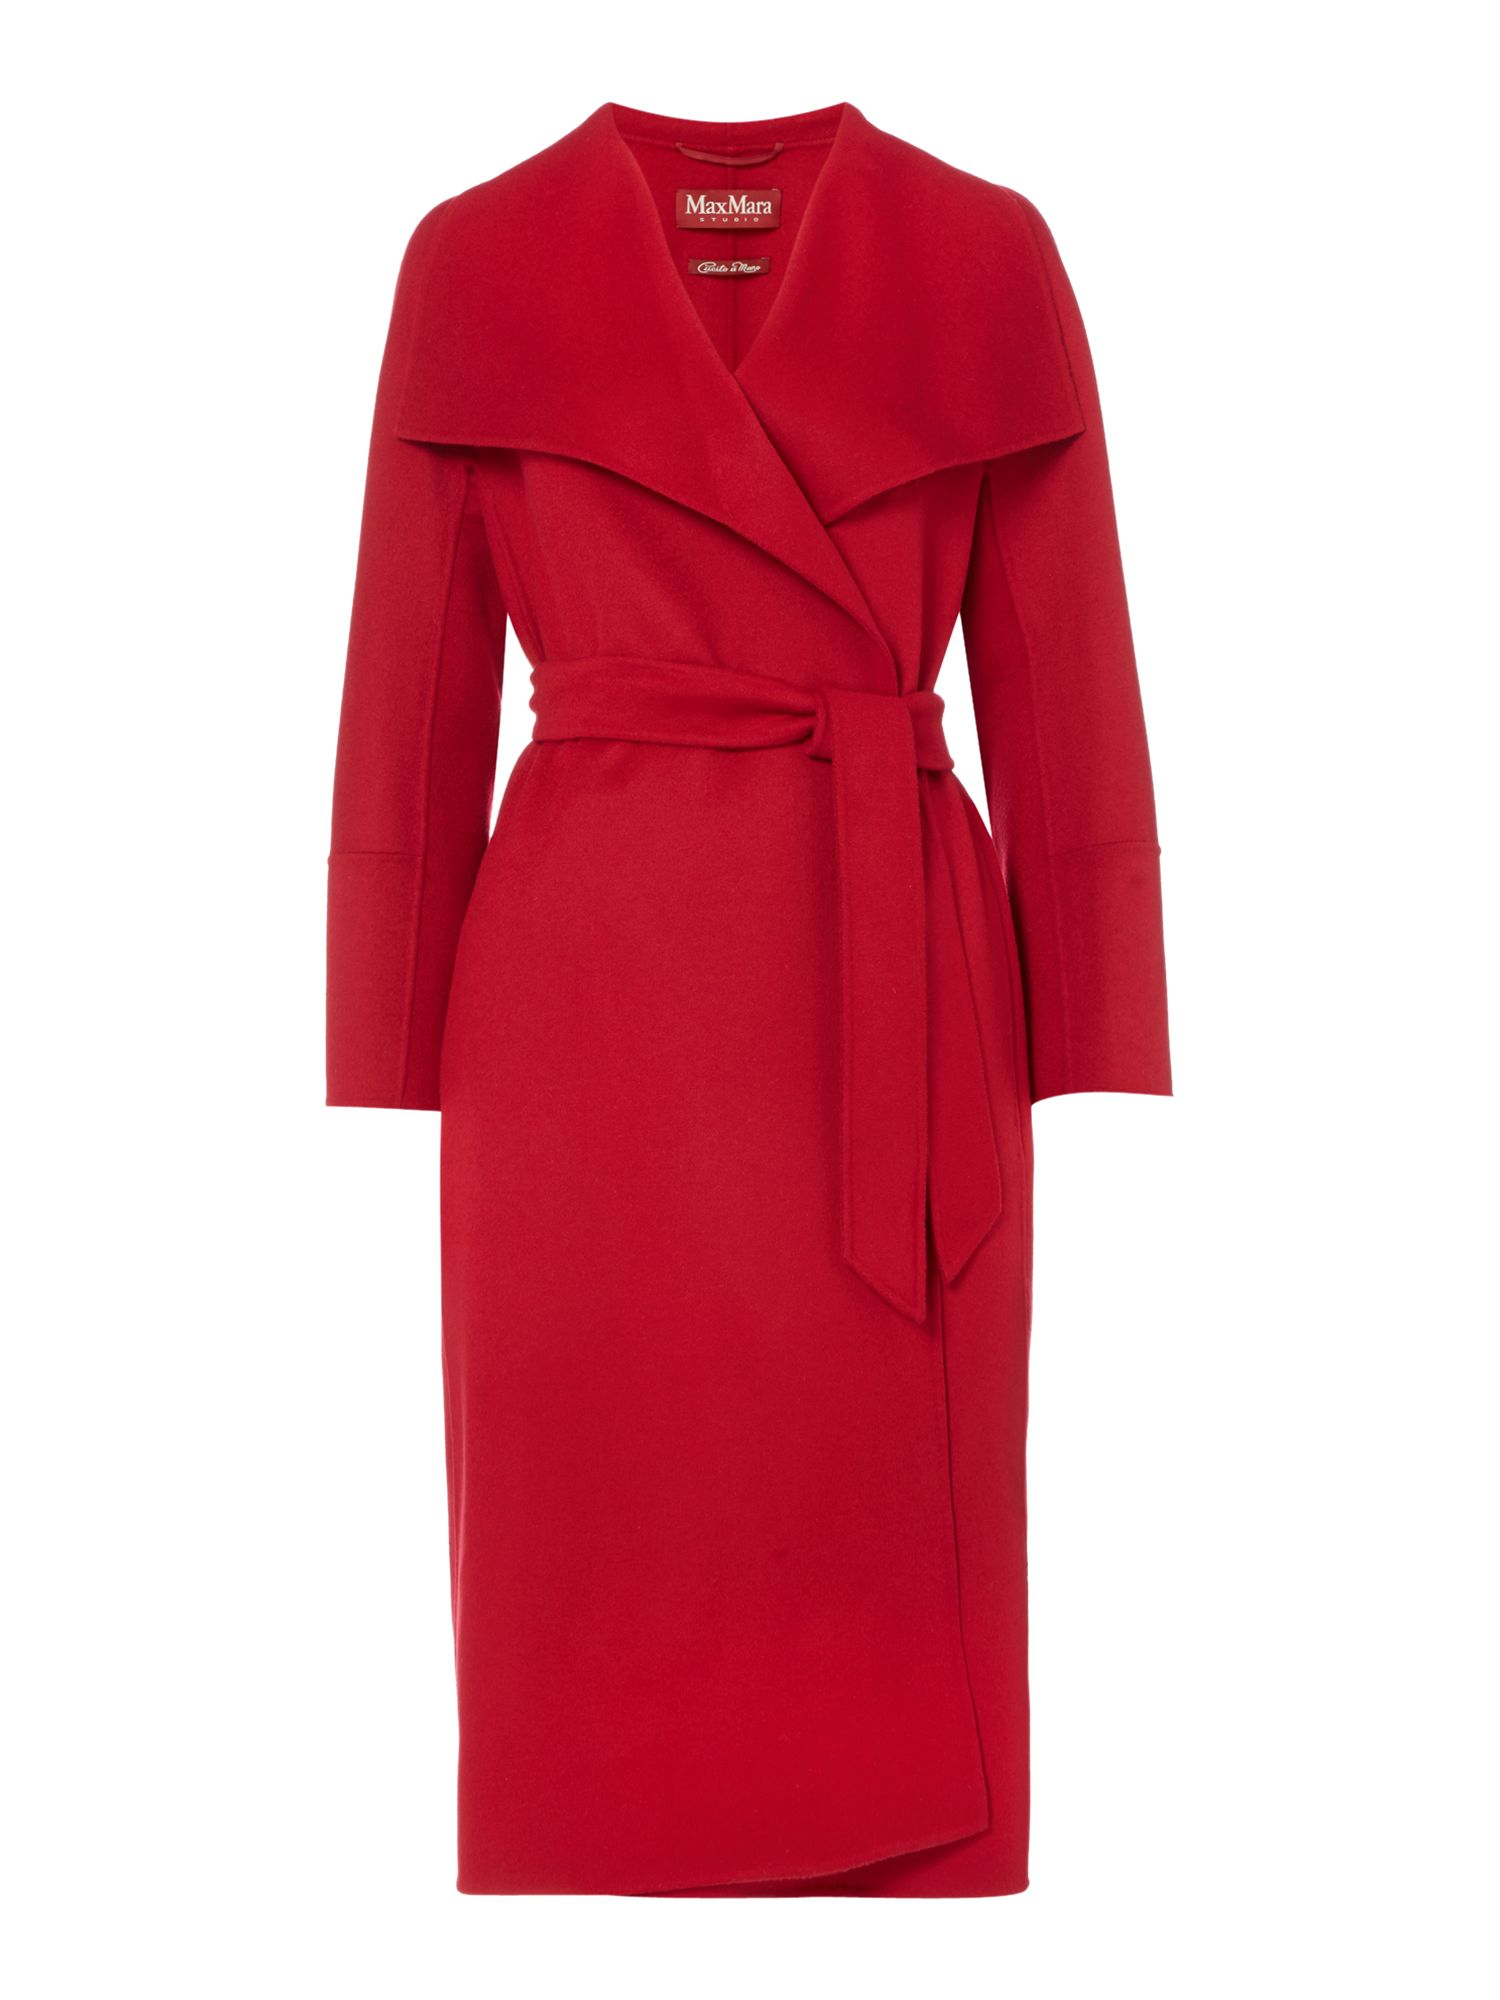 Max Mara Studio Cremona belted long sleeve wool coat, Red